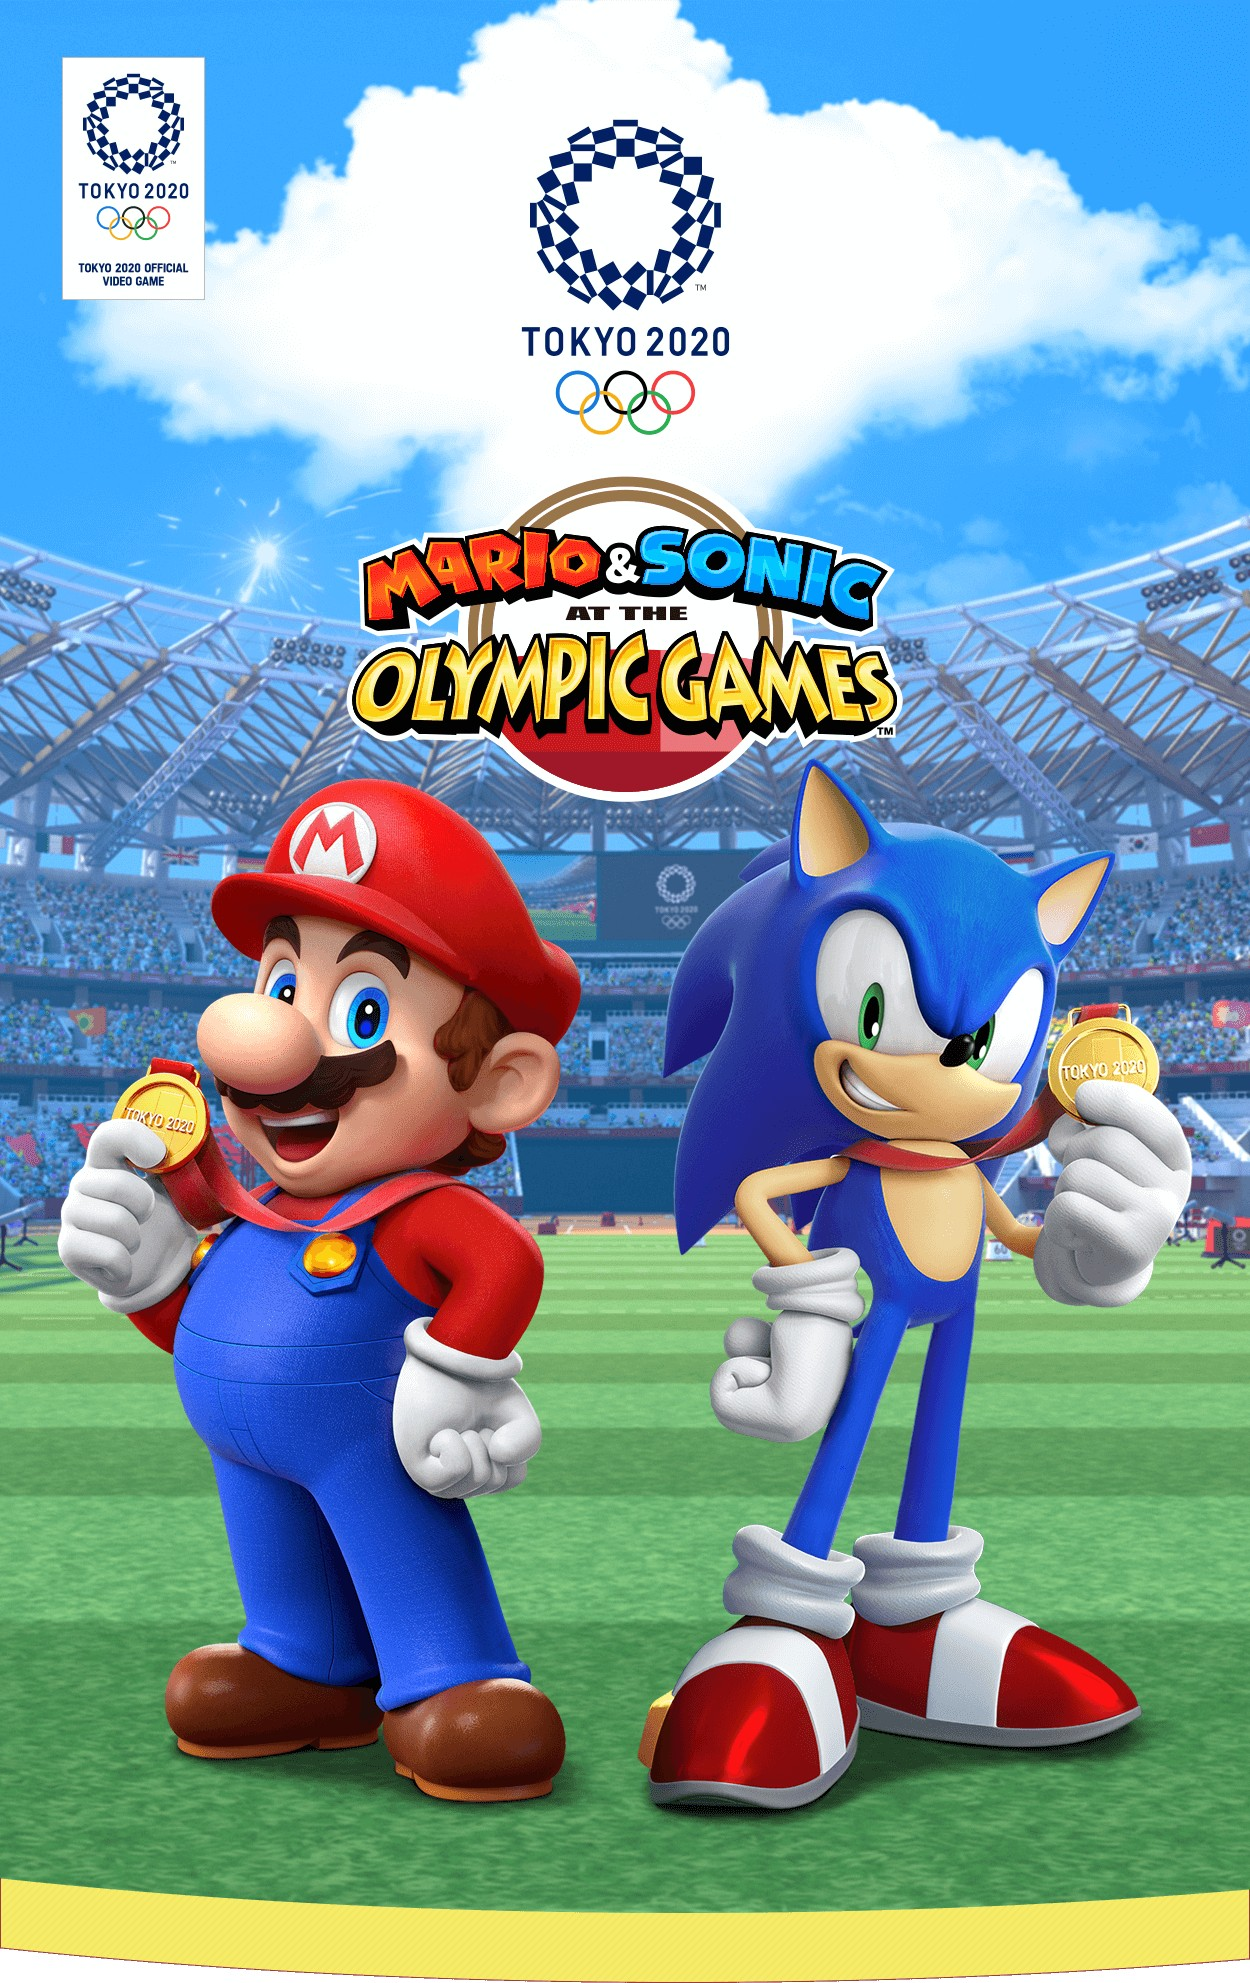 Mario & Sonic at the Olympic Games Tokyo 2020 马里奥与索尼克在东京2020奥运会